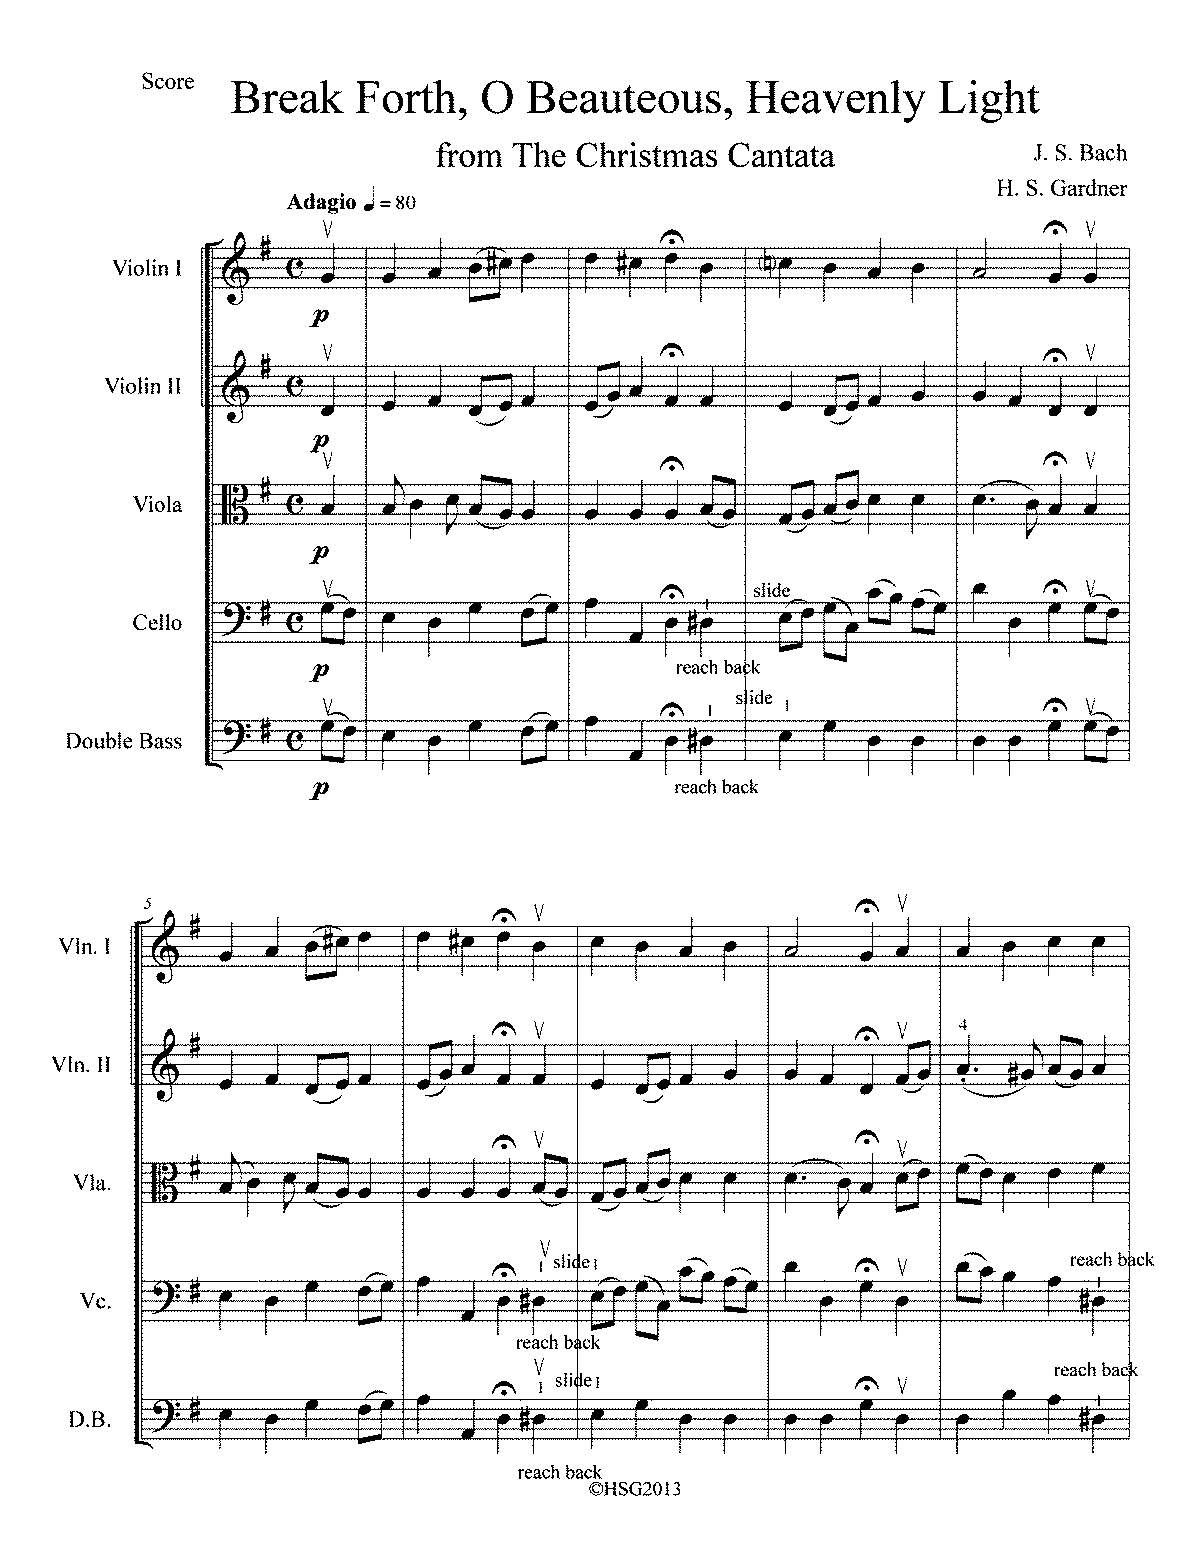 PMLP448806-Break Forth (Bach) score PDF.PDF